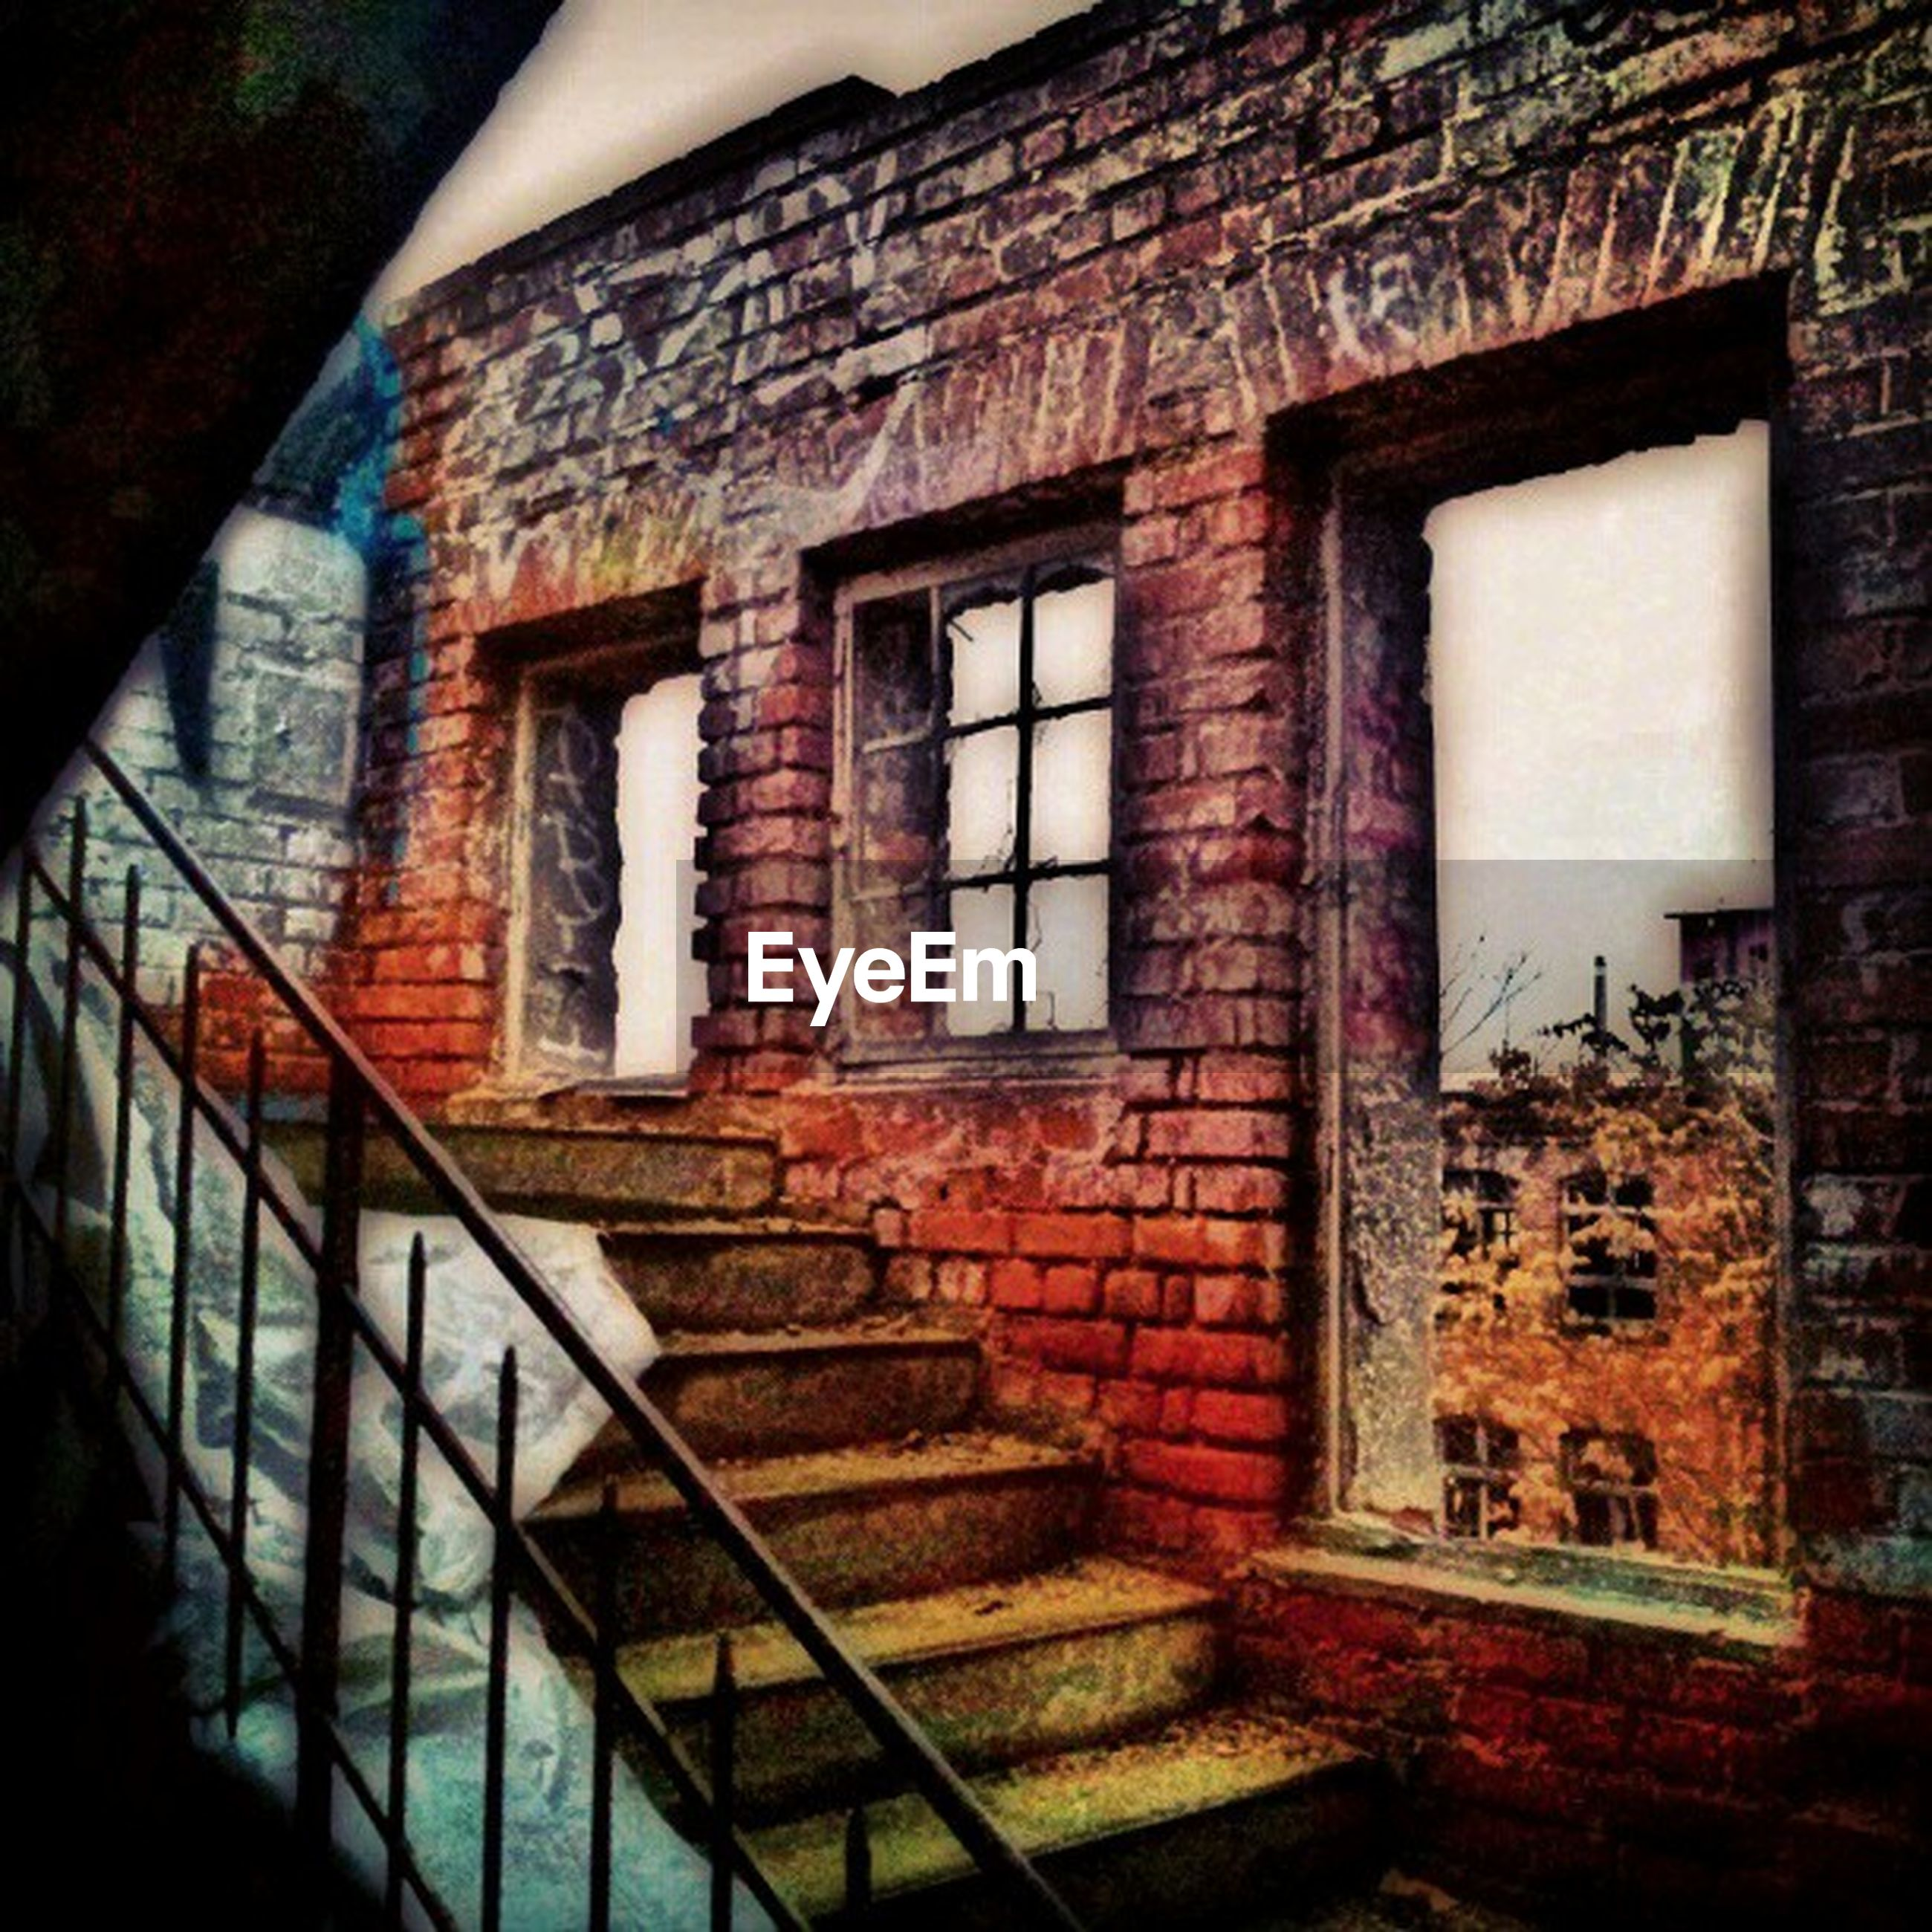 architecture, built structure, building exterior, window, house, building, brick wall, wall - building feature, residential structure, residential building, wall, old, low angle view, day, indoors, no people, red, door, abandoned